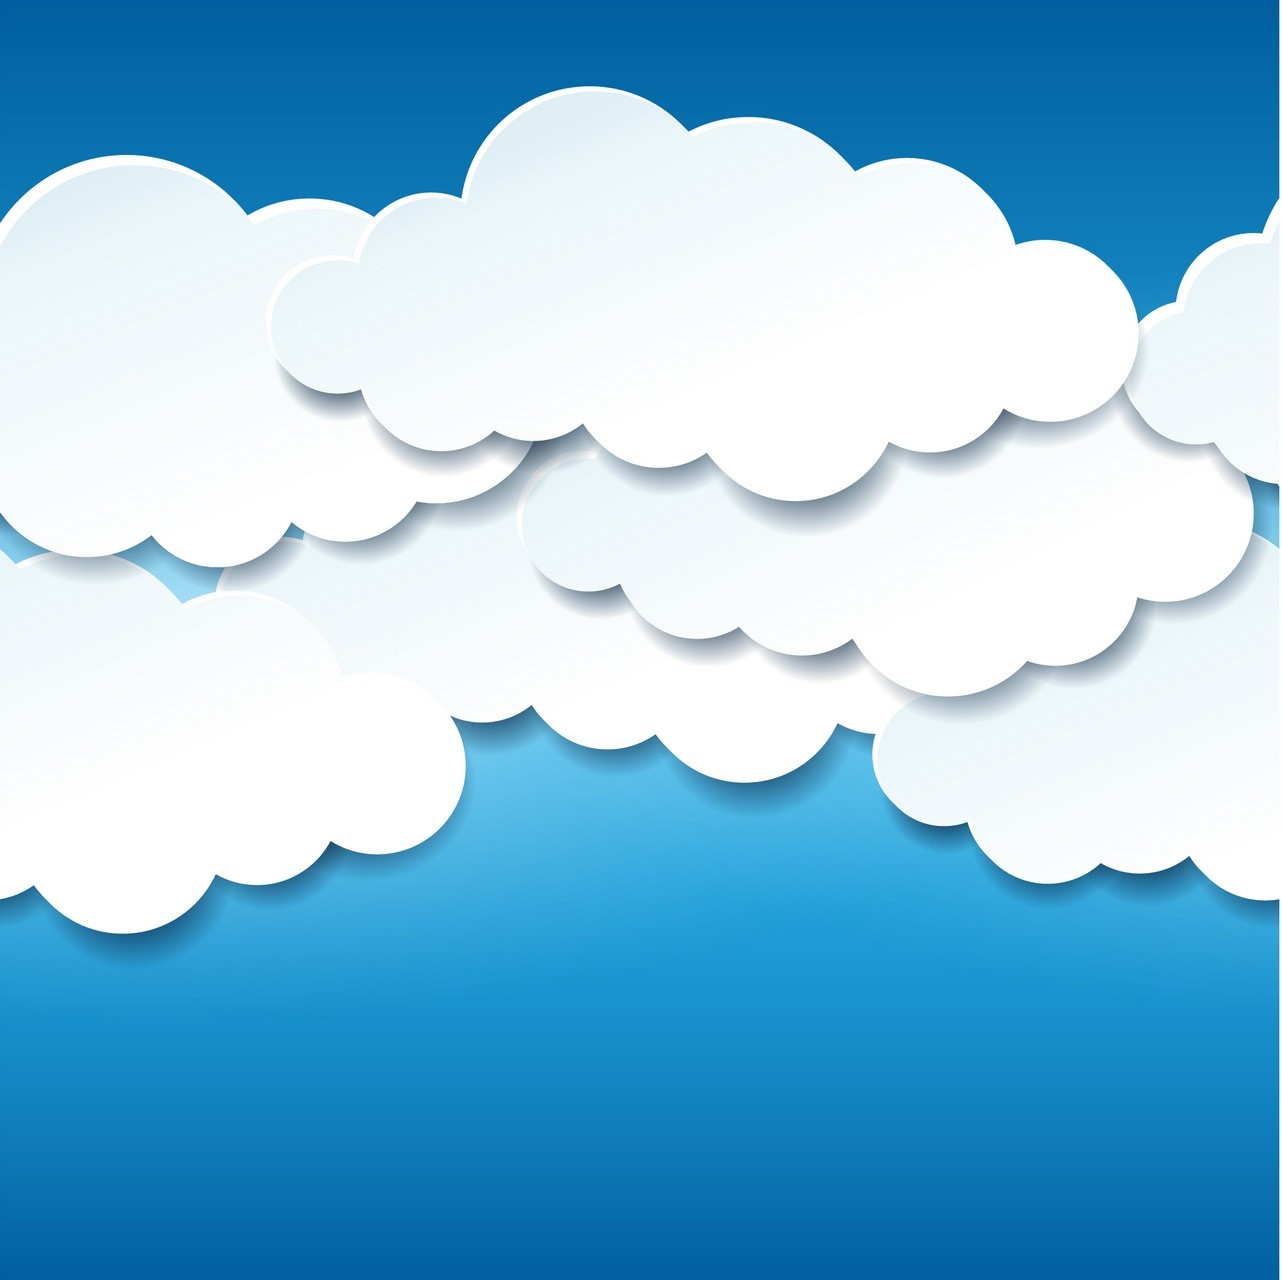 Cloud Background 01 Vector EPS Free Download, Logo, Icons, Brand ...